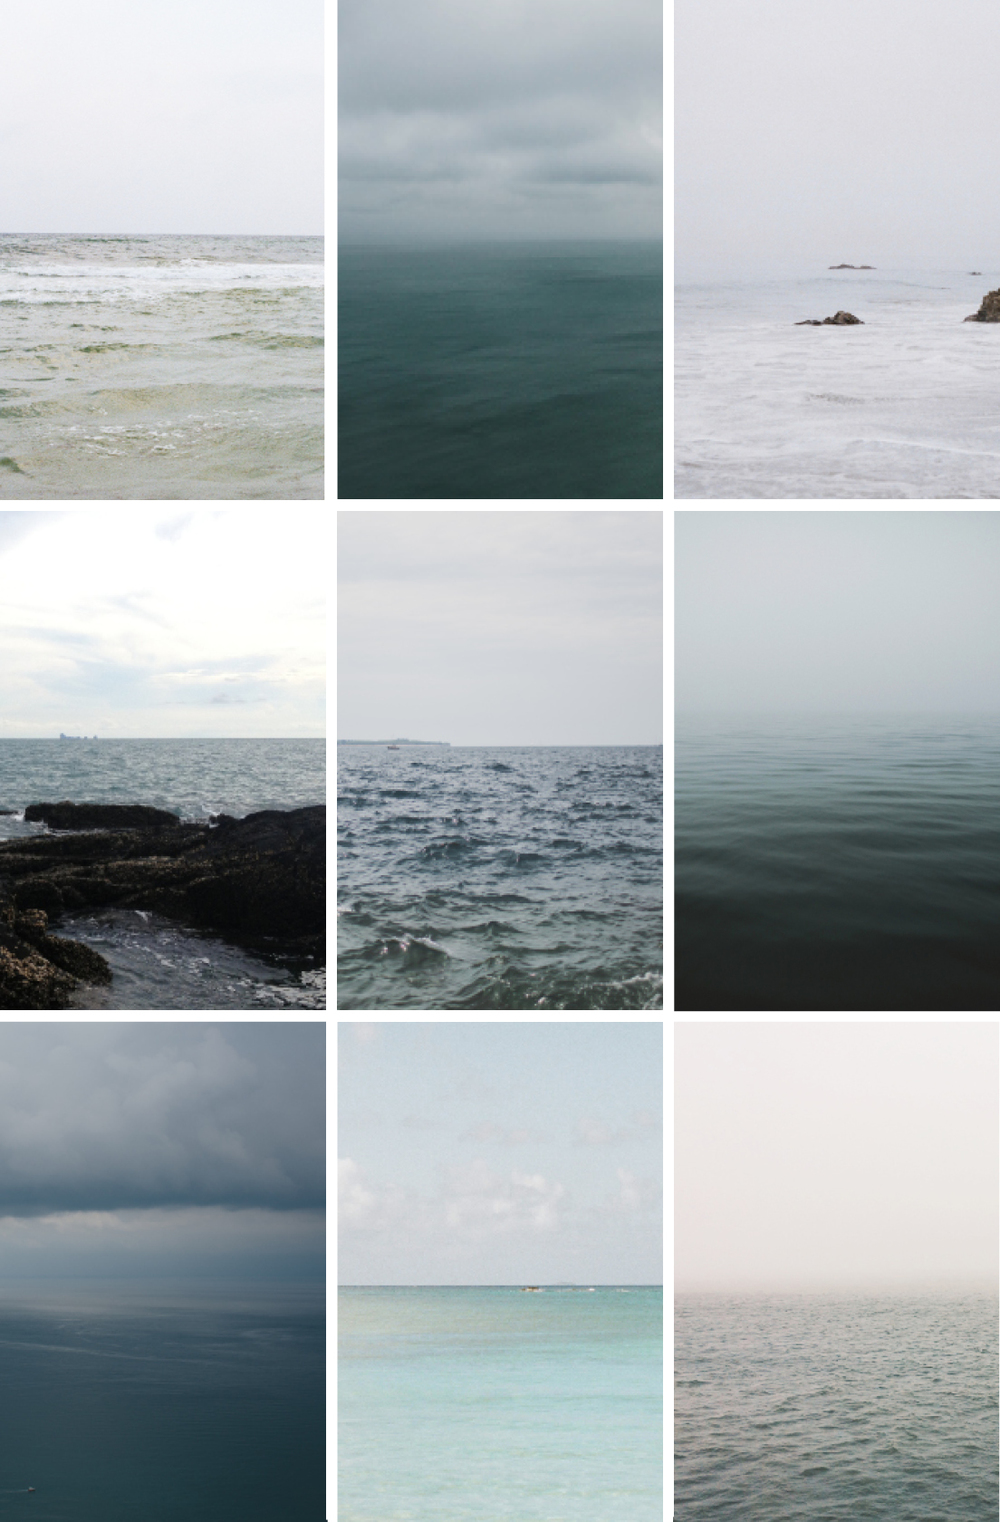 (Row 1) Gulf of Mexico,  Abby Ott Hester  / New Zealand,  Fiona Andersen  / Pacific Ocean,  Lily Glass  (Row 2) Thailand,  Virginia Petitte  / Slovenia,  Alicia White  / Canada,  Fiona Andersen  (Row 3) Sicily,  Alicia White  / St. John U.S.V.I.,  Lily Glass  / Charleston Pier,  Beatrice Helman